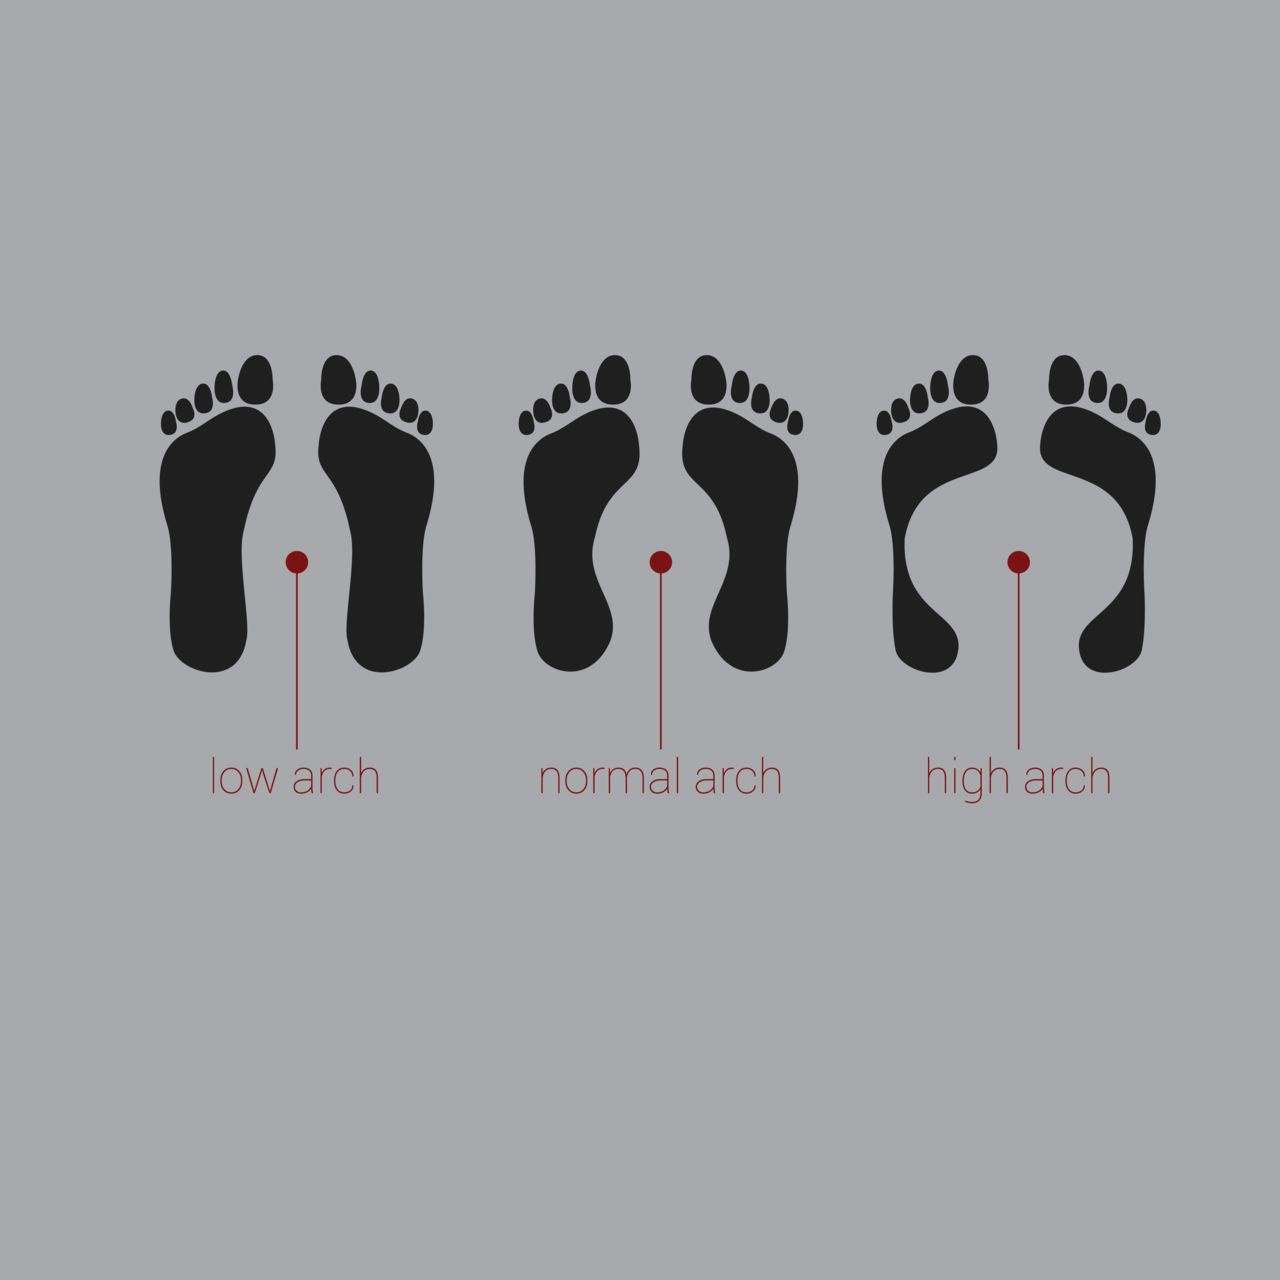 Knowing  your arch type can help you select the best shoe for your foot type.